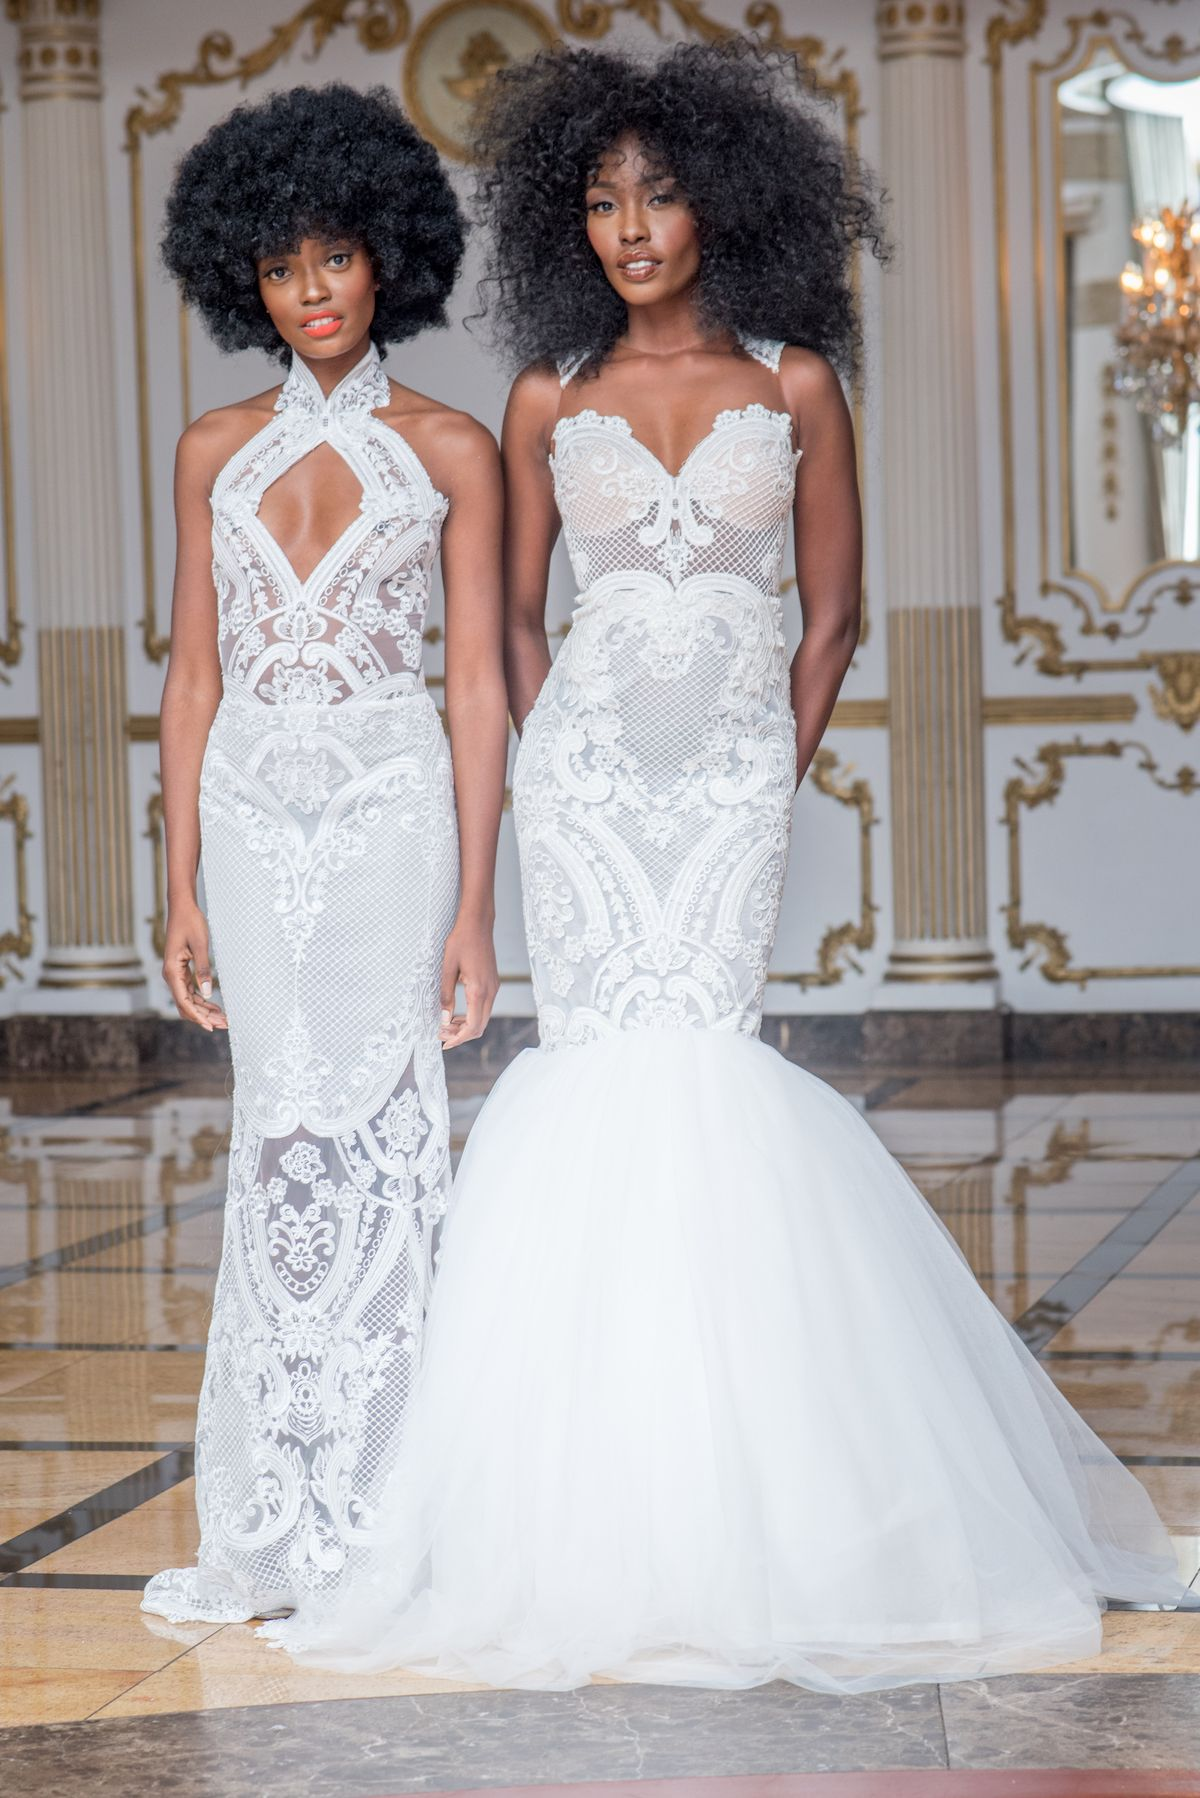 Wedding Dresses From Pantora Bridal S Boundless Collection